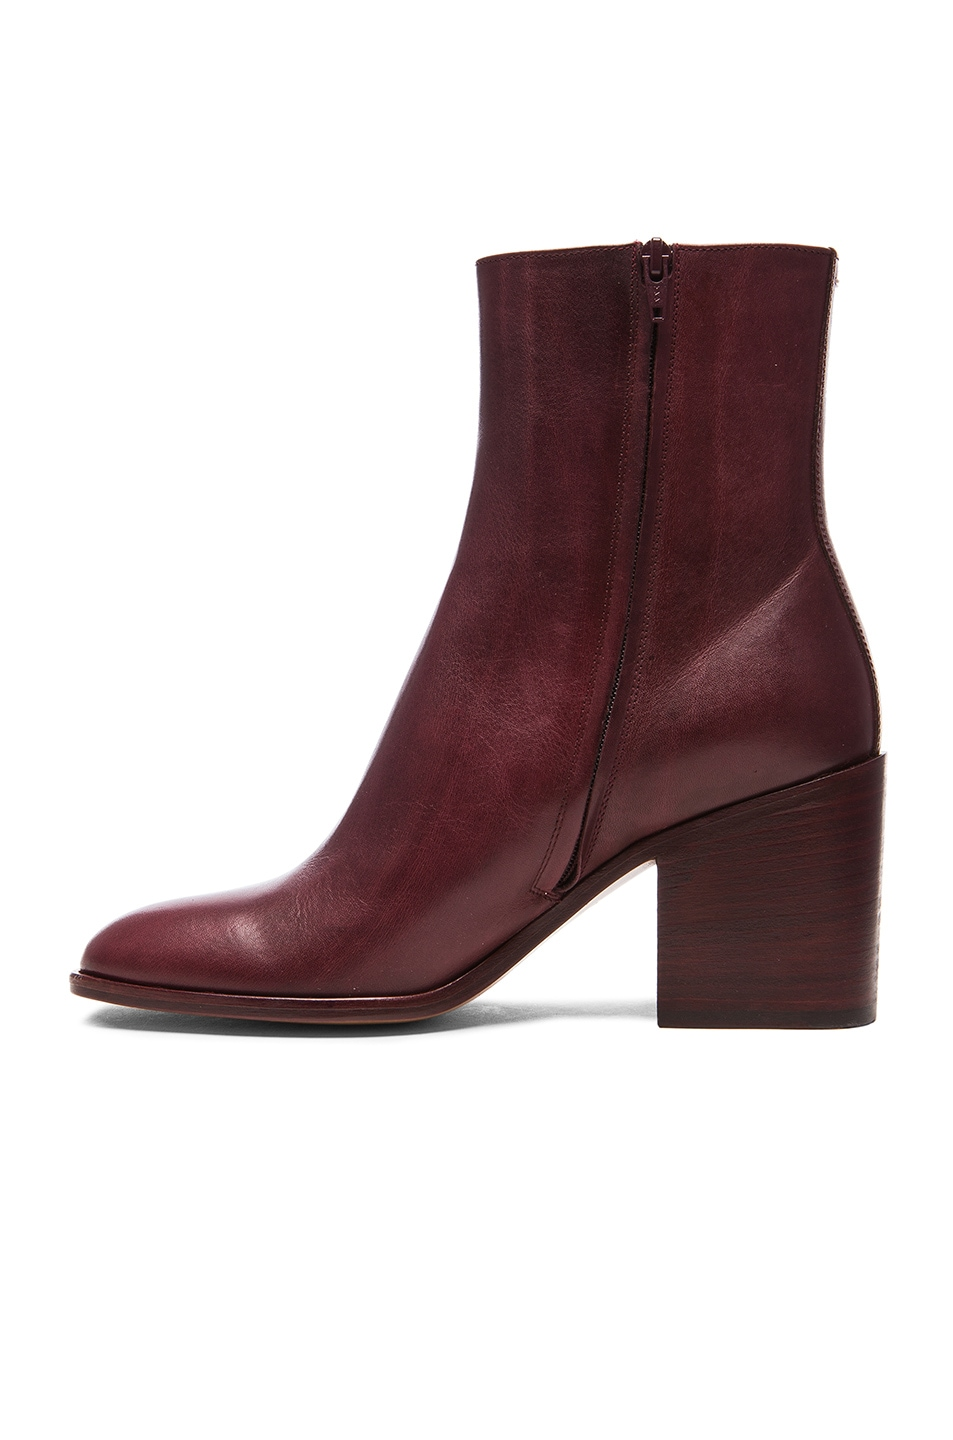 Image 5 of Maison Margiela Waxed Leather Booties in Bordeaux